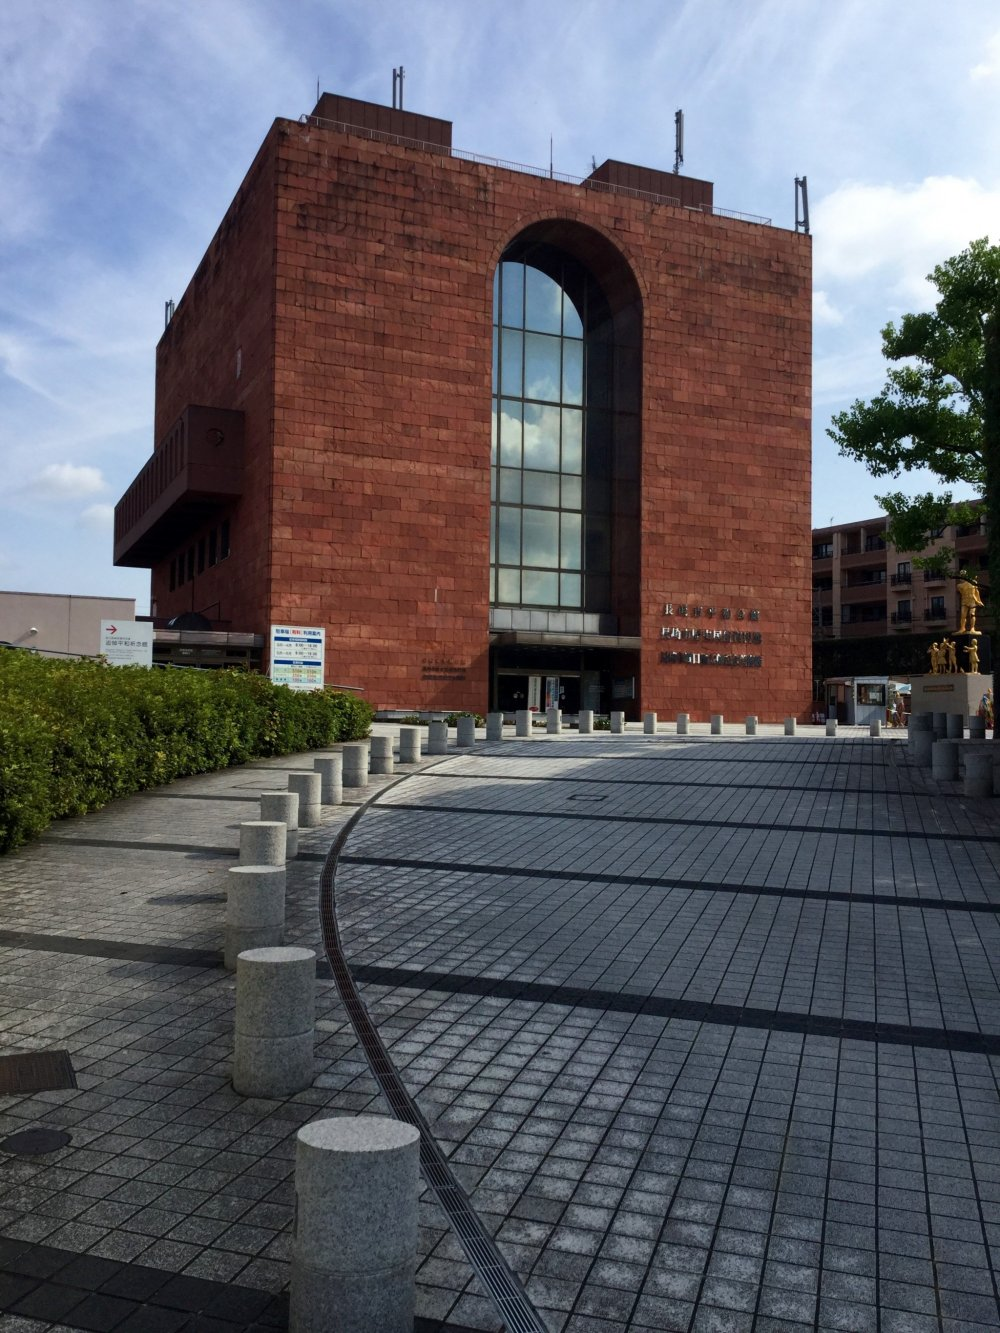 Nagasaki National Peace Memorial Hall for the Atomic Bomb Victims